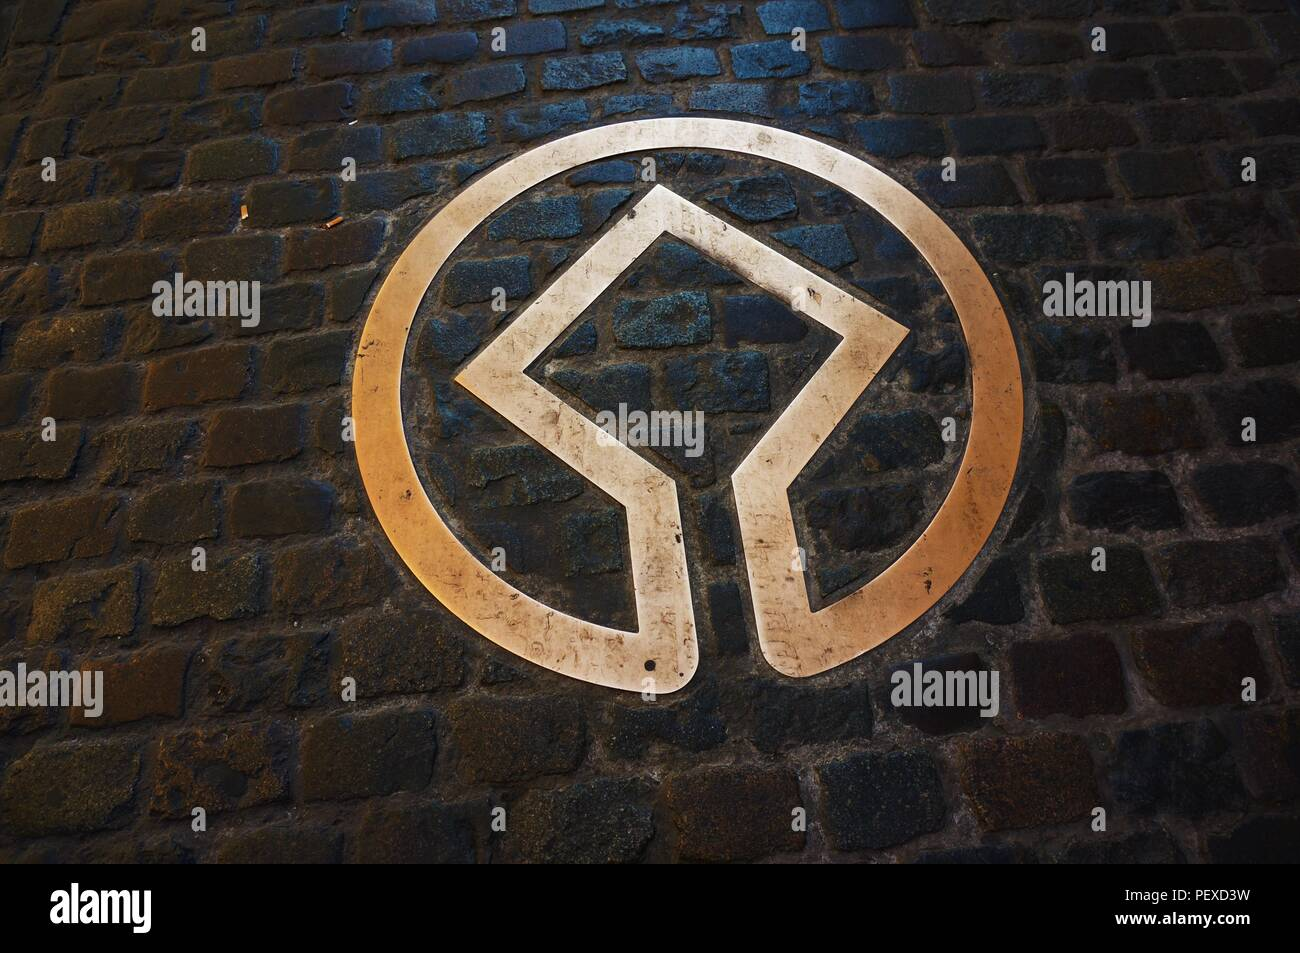 Brick Of Gold Stock Photos & Brick Of Gold Stock Images - Alamy